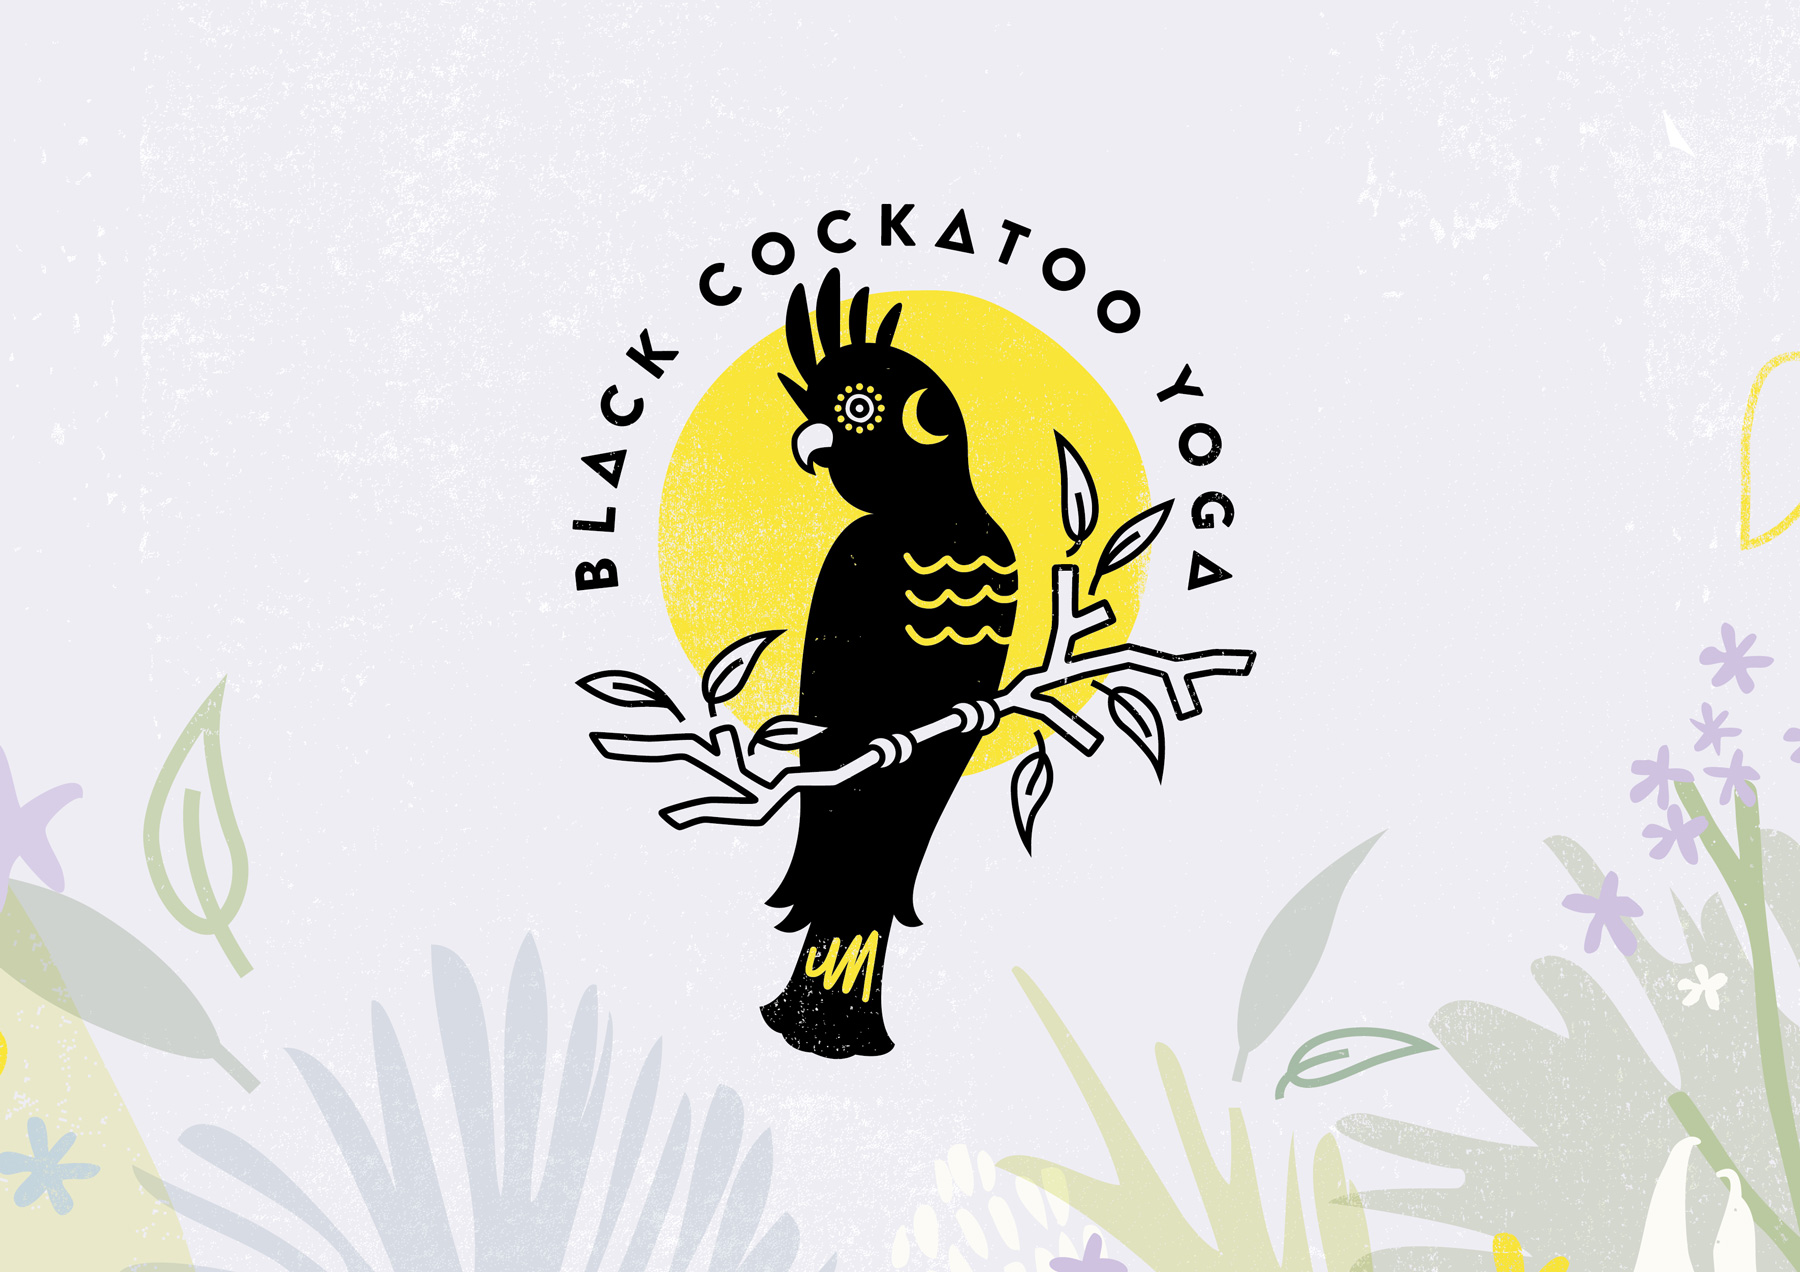 Black Cockatoo Yoga